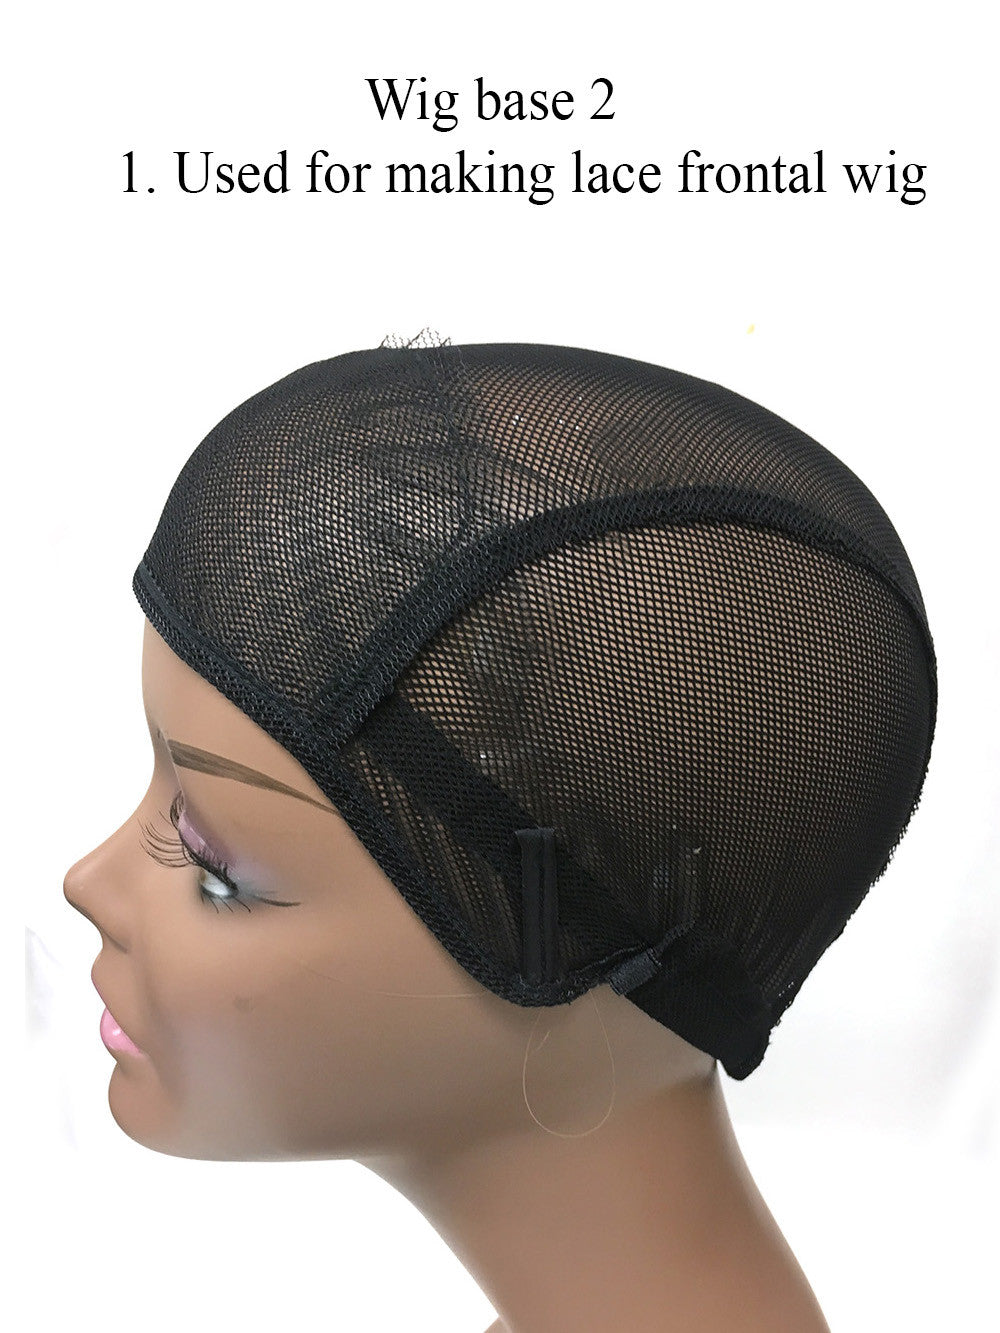 Wig Making Service